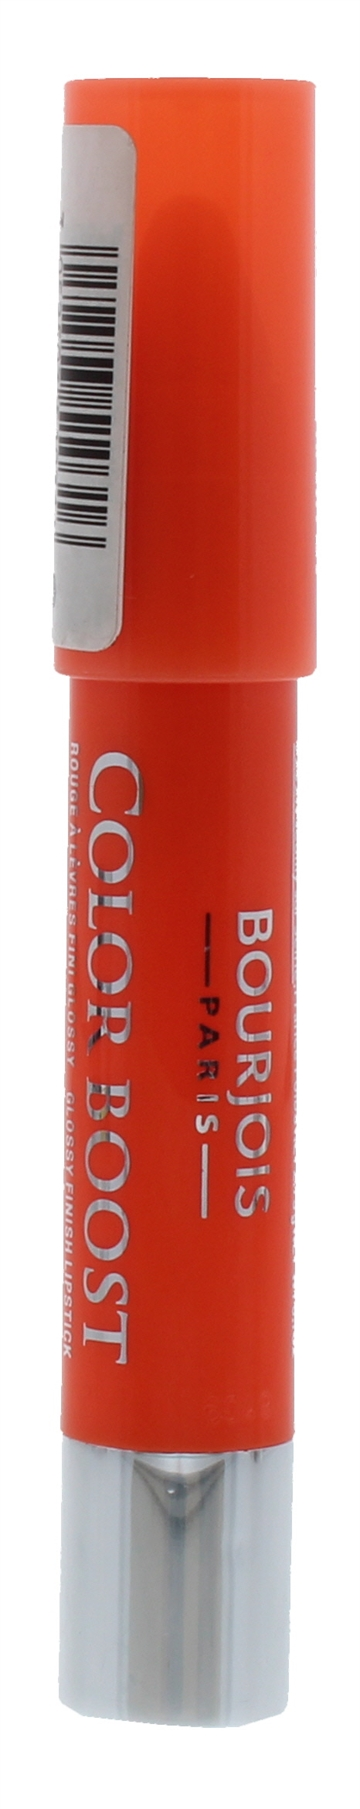 Bourjois Colour Lip Crayon Orange 03